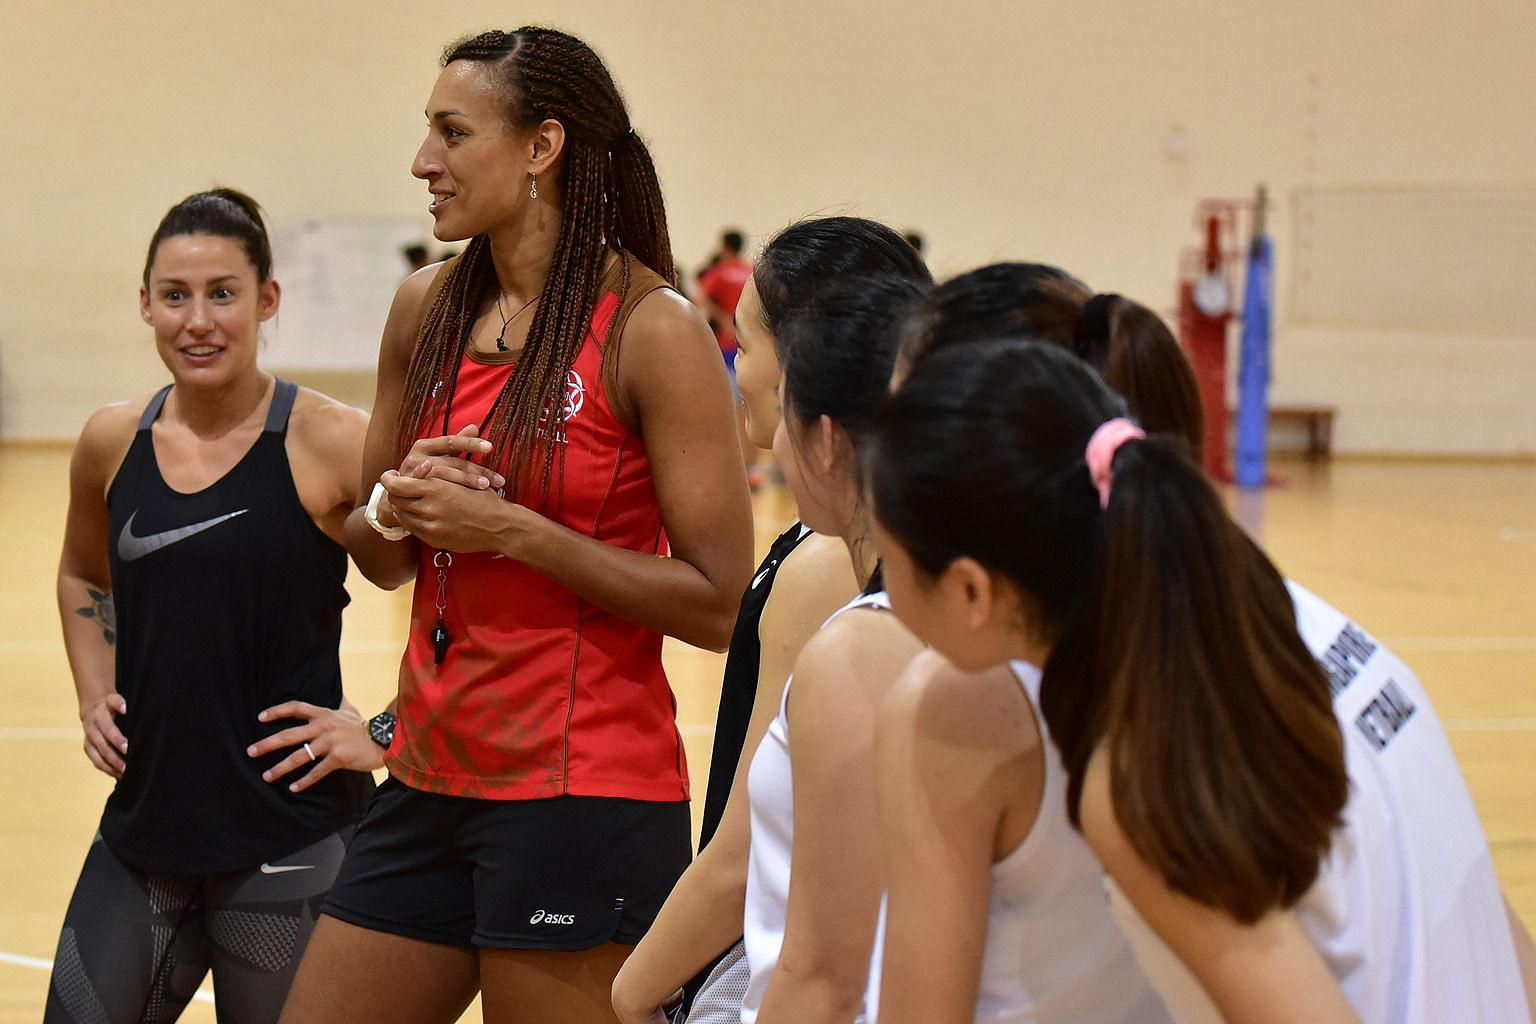 Netball stars Geva Mentor of England (second from left) and Madi Robinson of Australia giving pointers to Singapore's national netballers during a training session at the OCBC Arena last night. The duo will attend the Netball Singapore awards night a